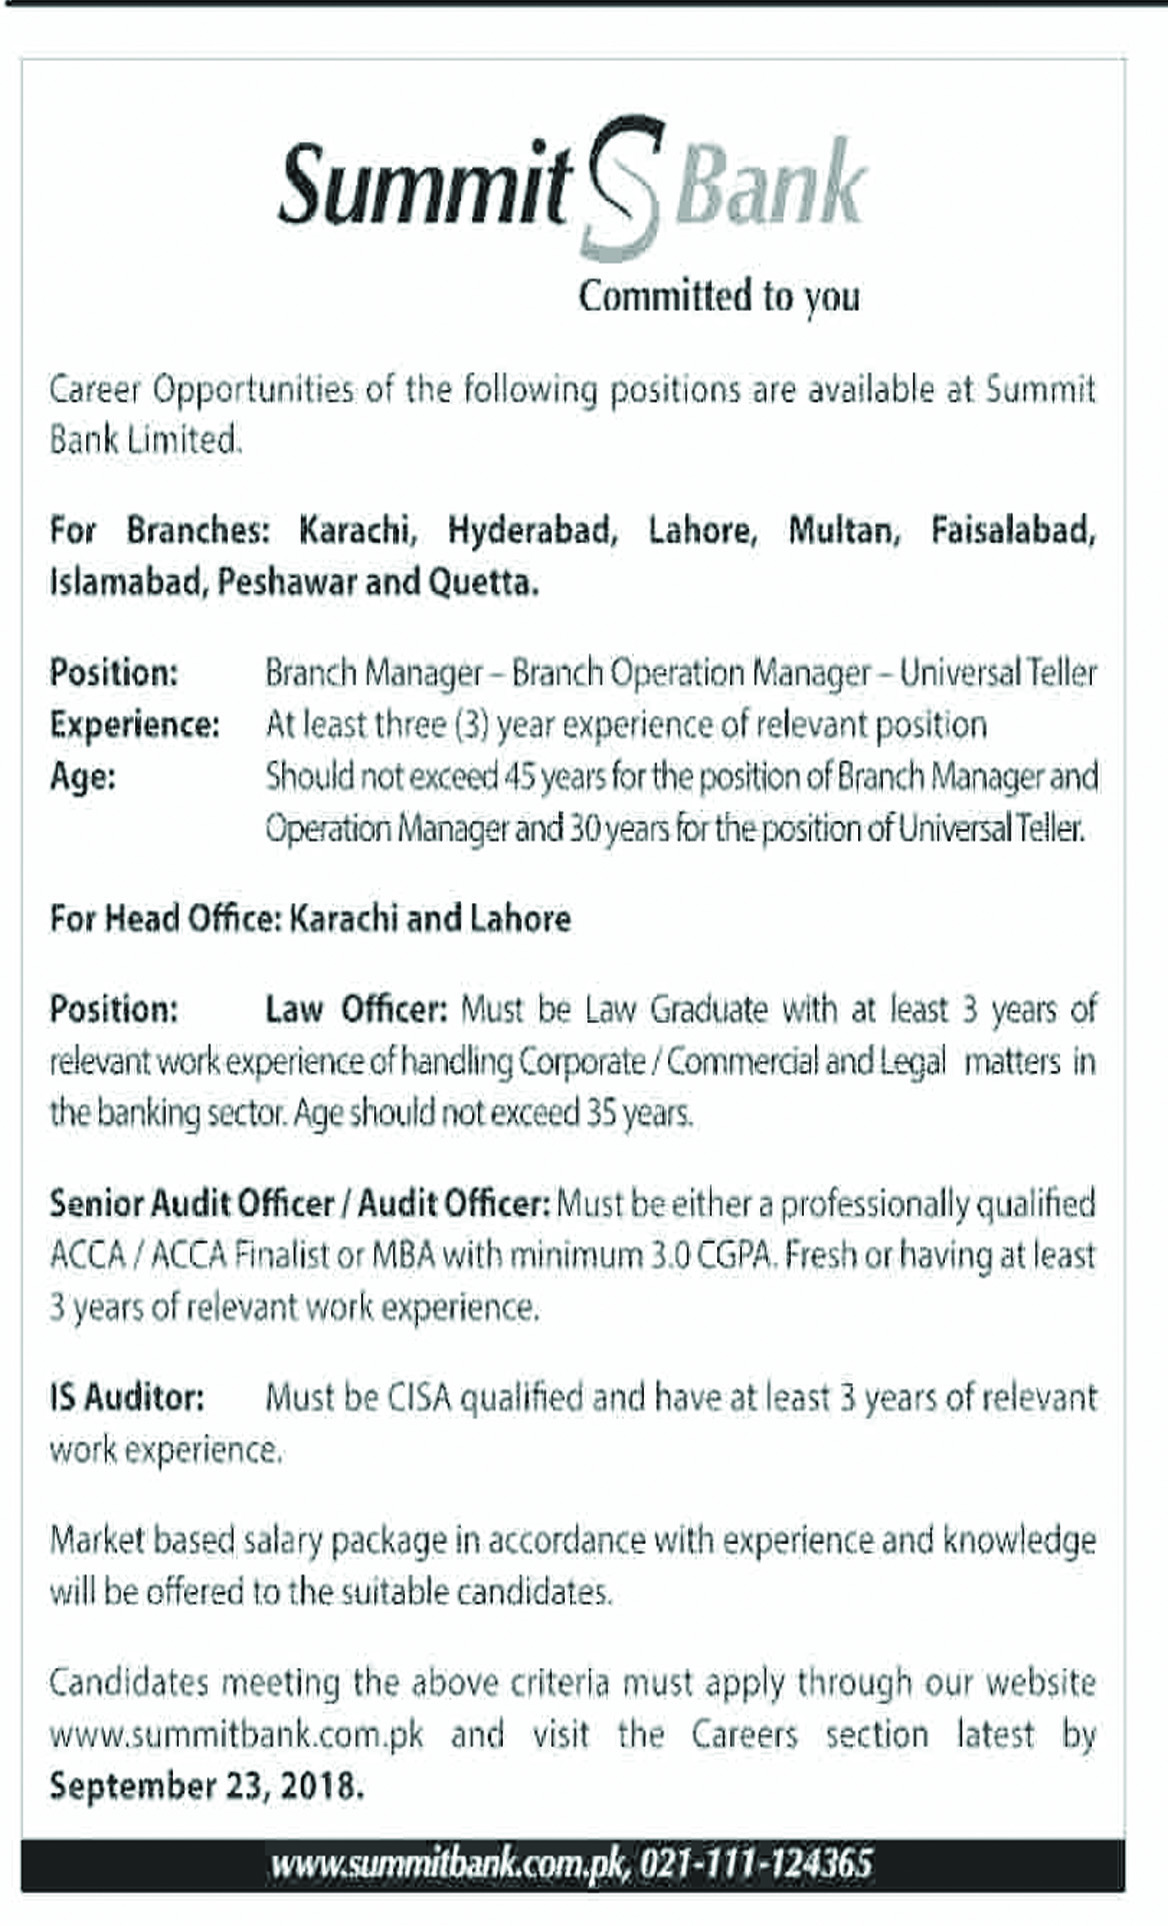 Jobs In Summit Bank Limited 17 Sep 2018